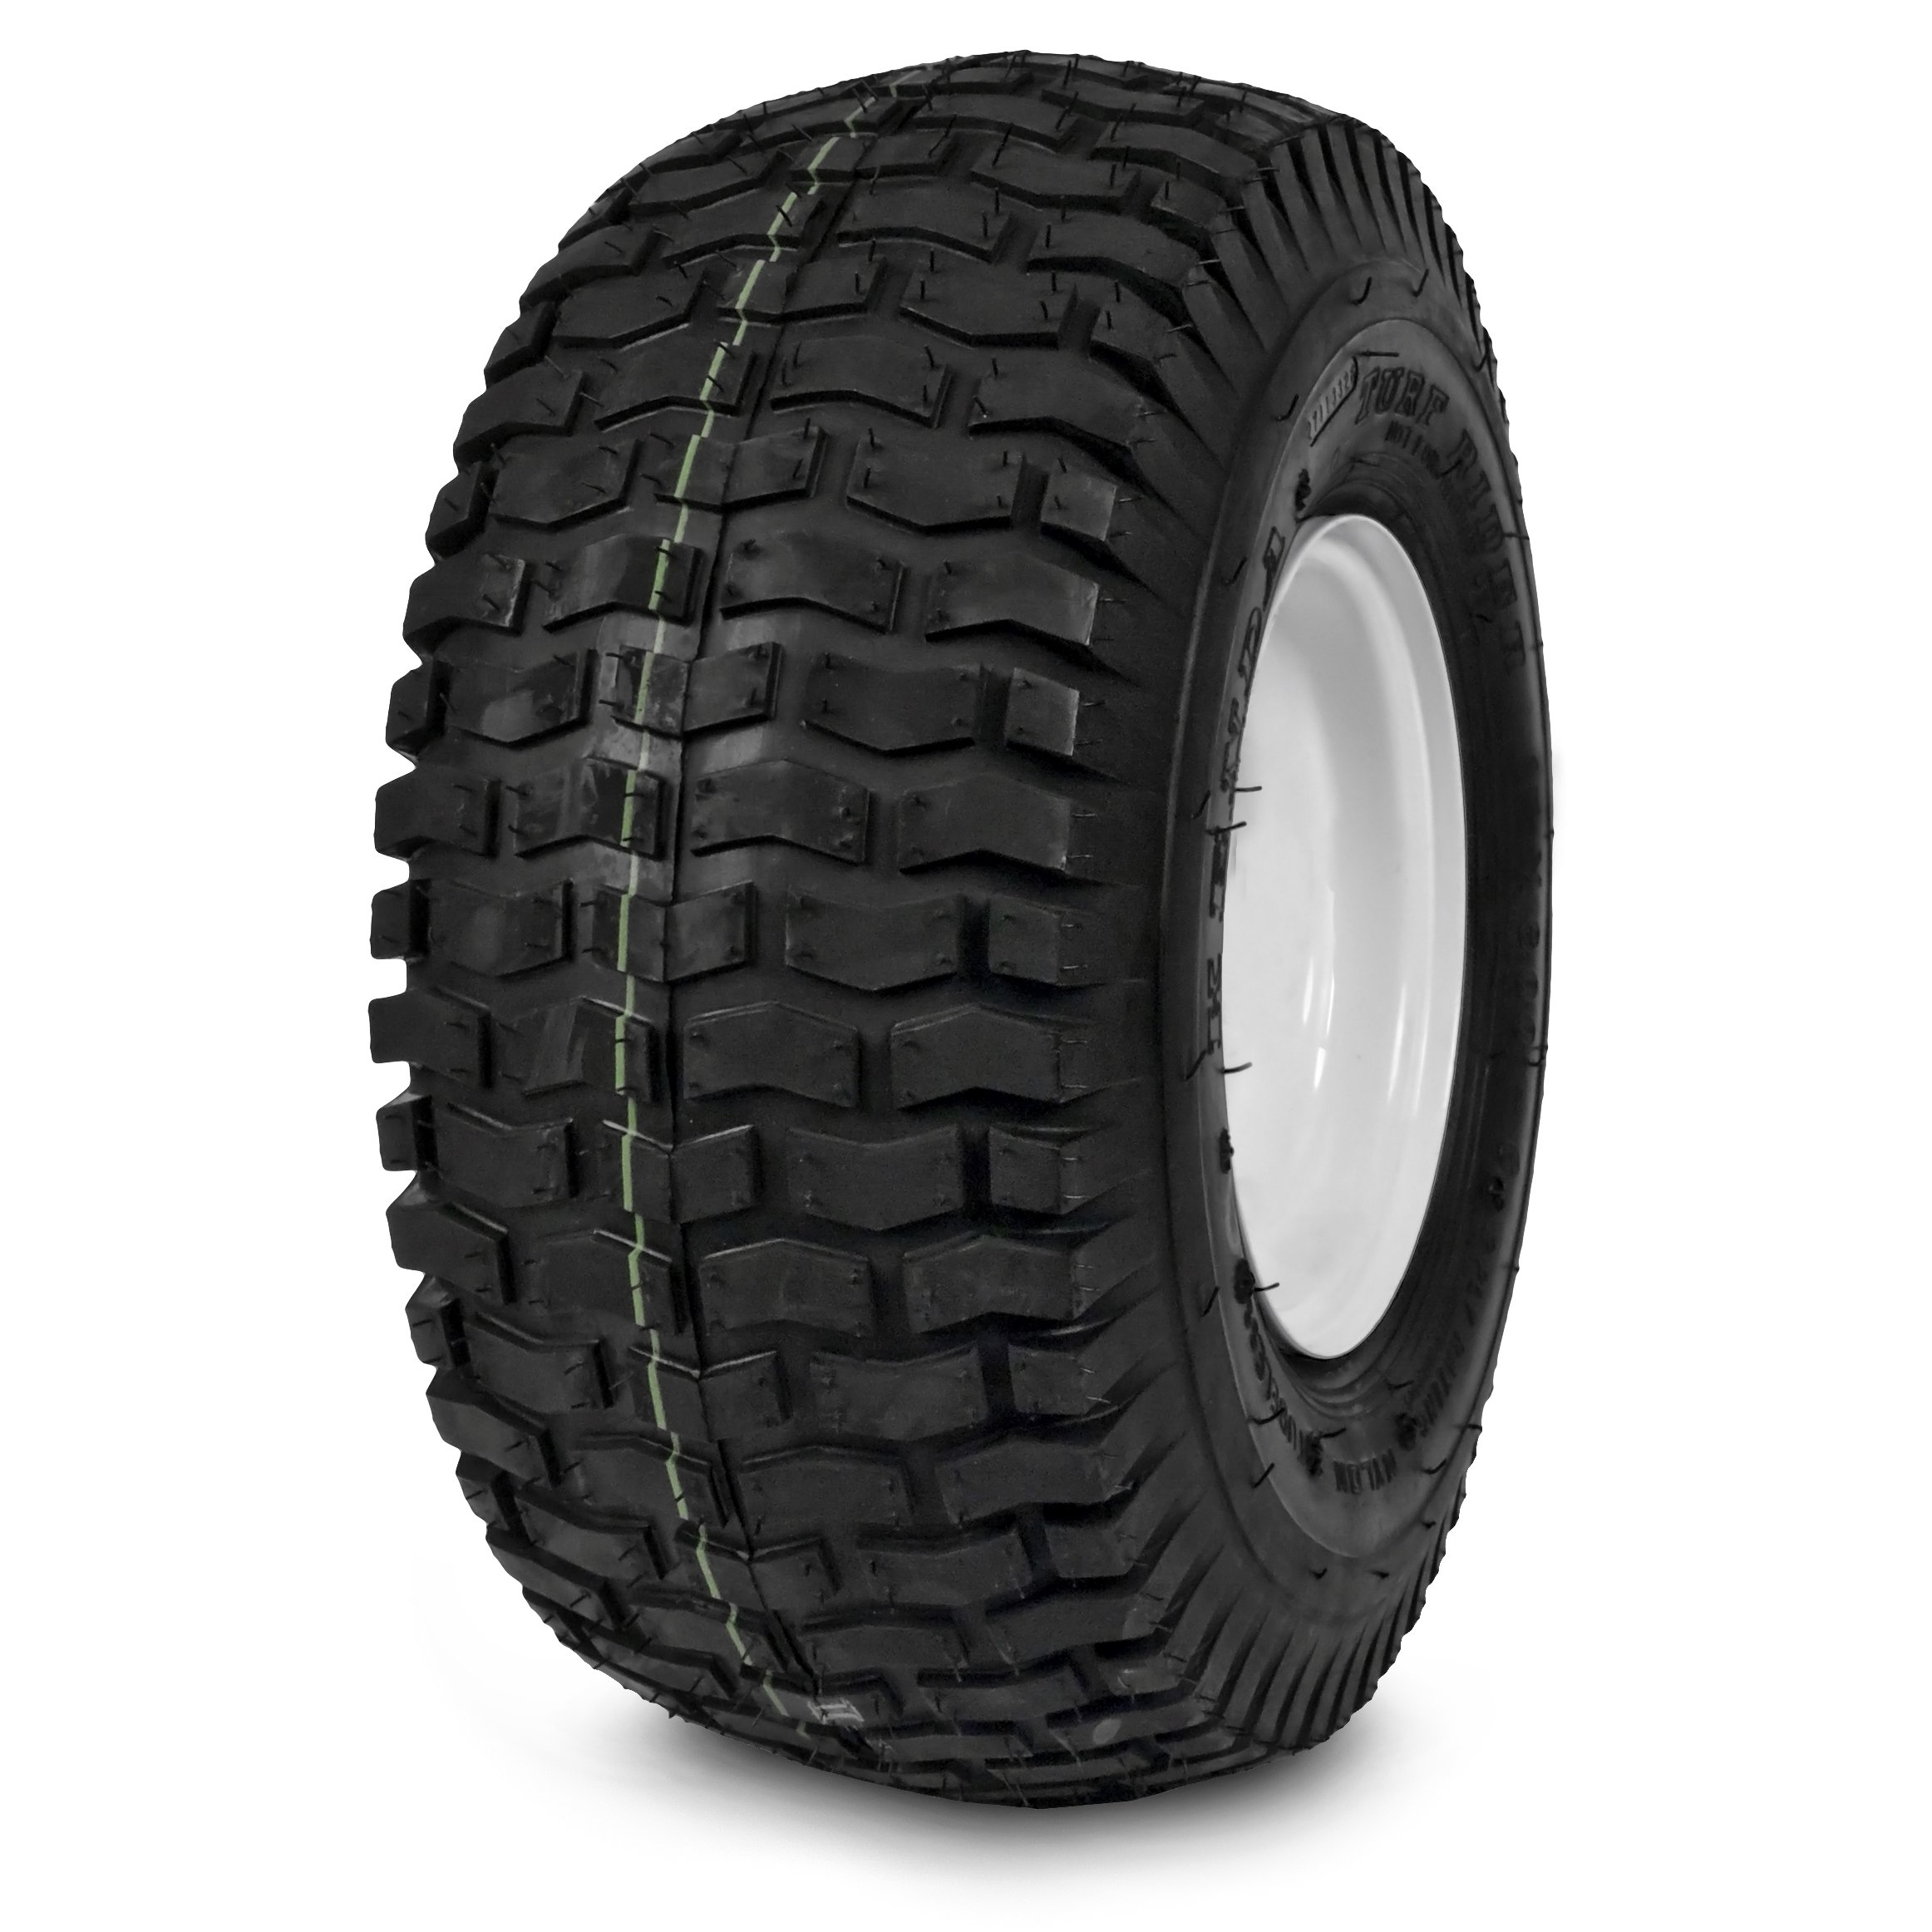 Kenda K358 Turf Rider Lawn and Garden Bias Tire - 15/6-6 by Kenda (Image #1)